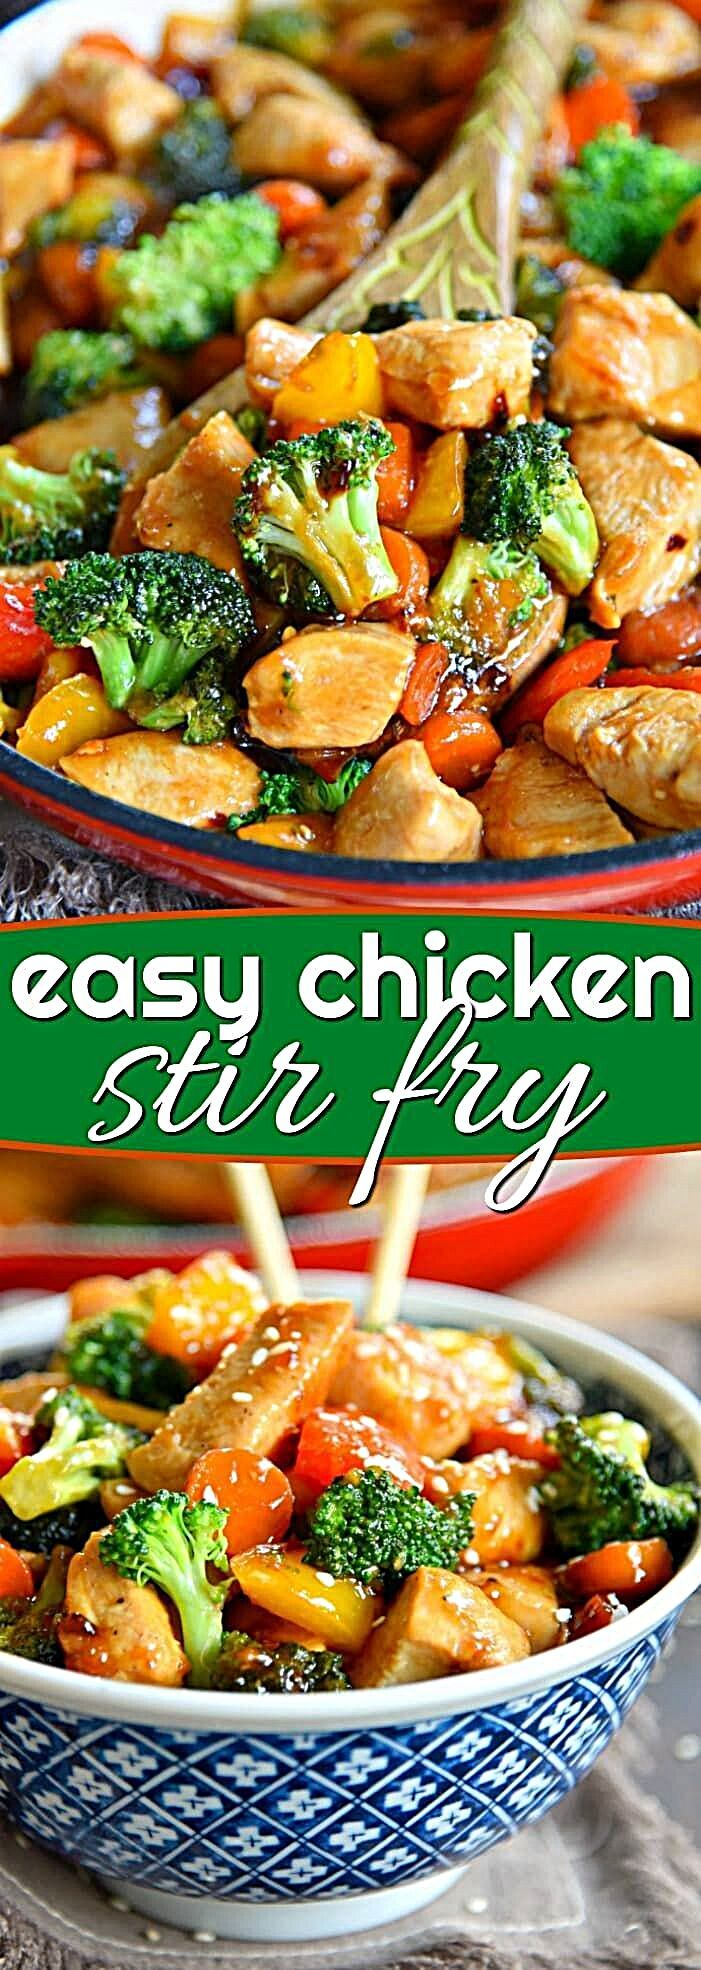 Photo of This easy Chicken Stir Fry recipe is loaded with fresh veggies and the most delicious